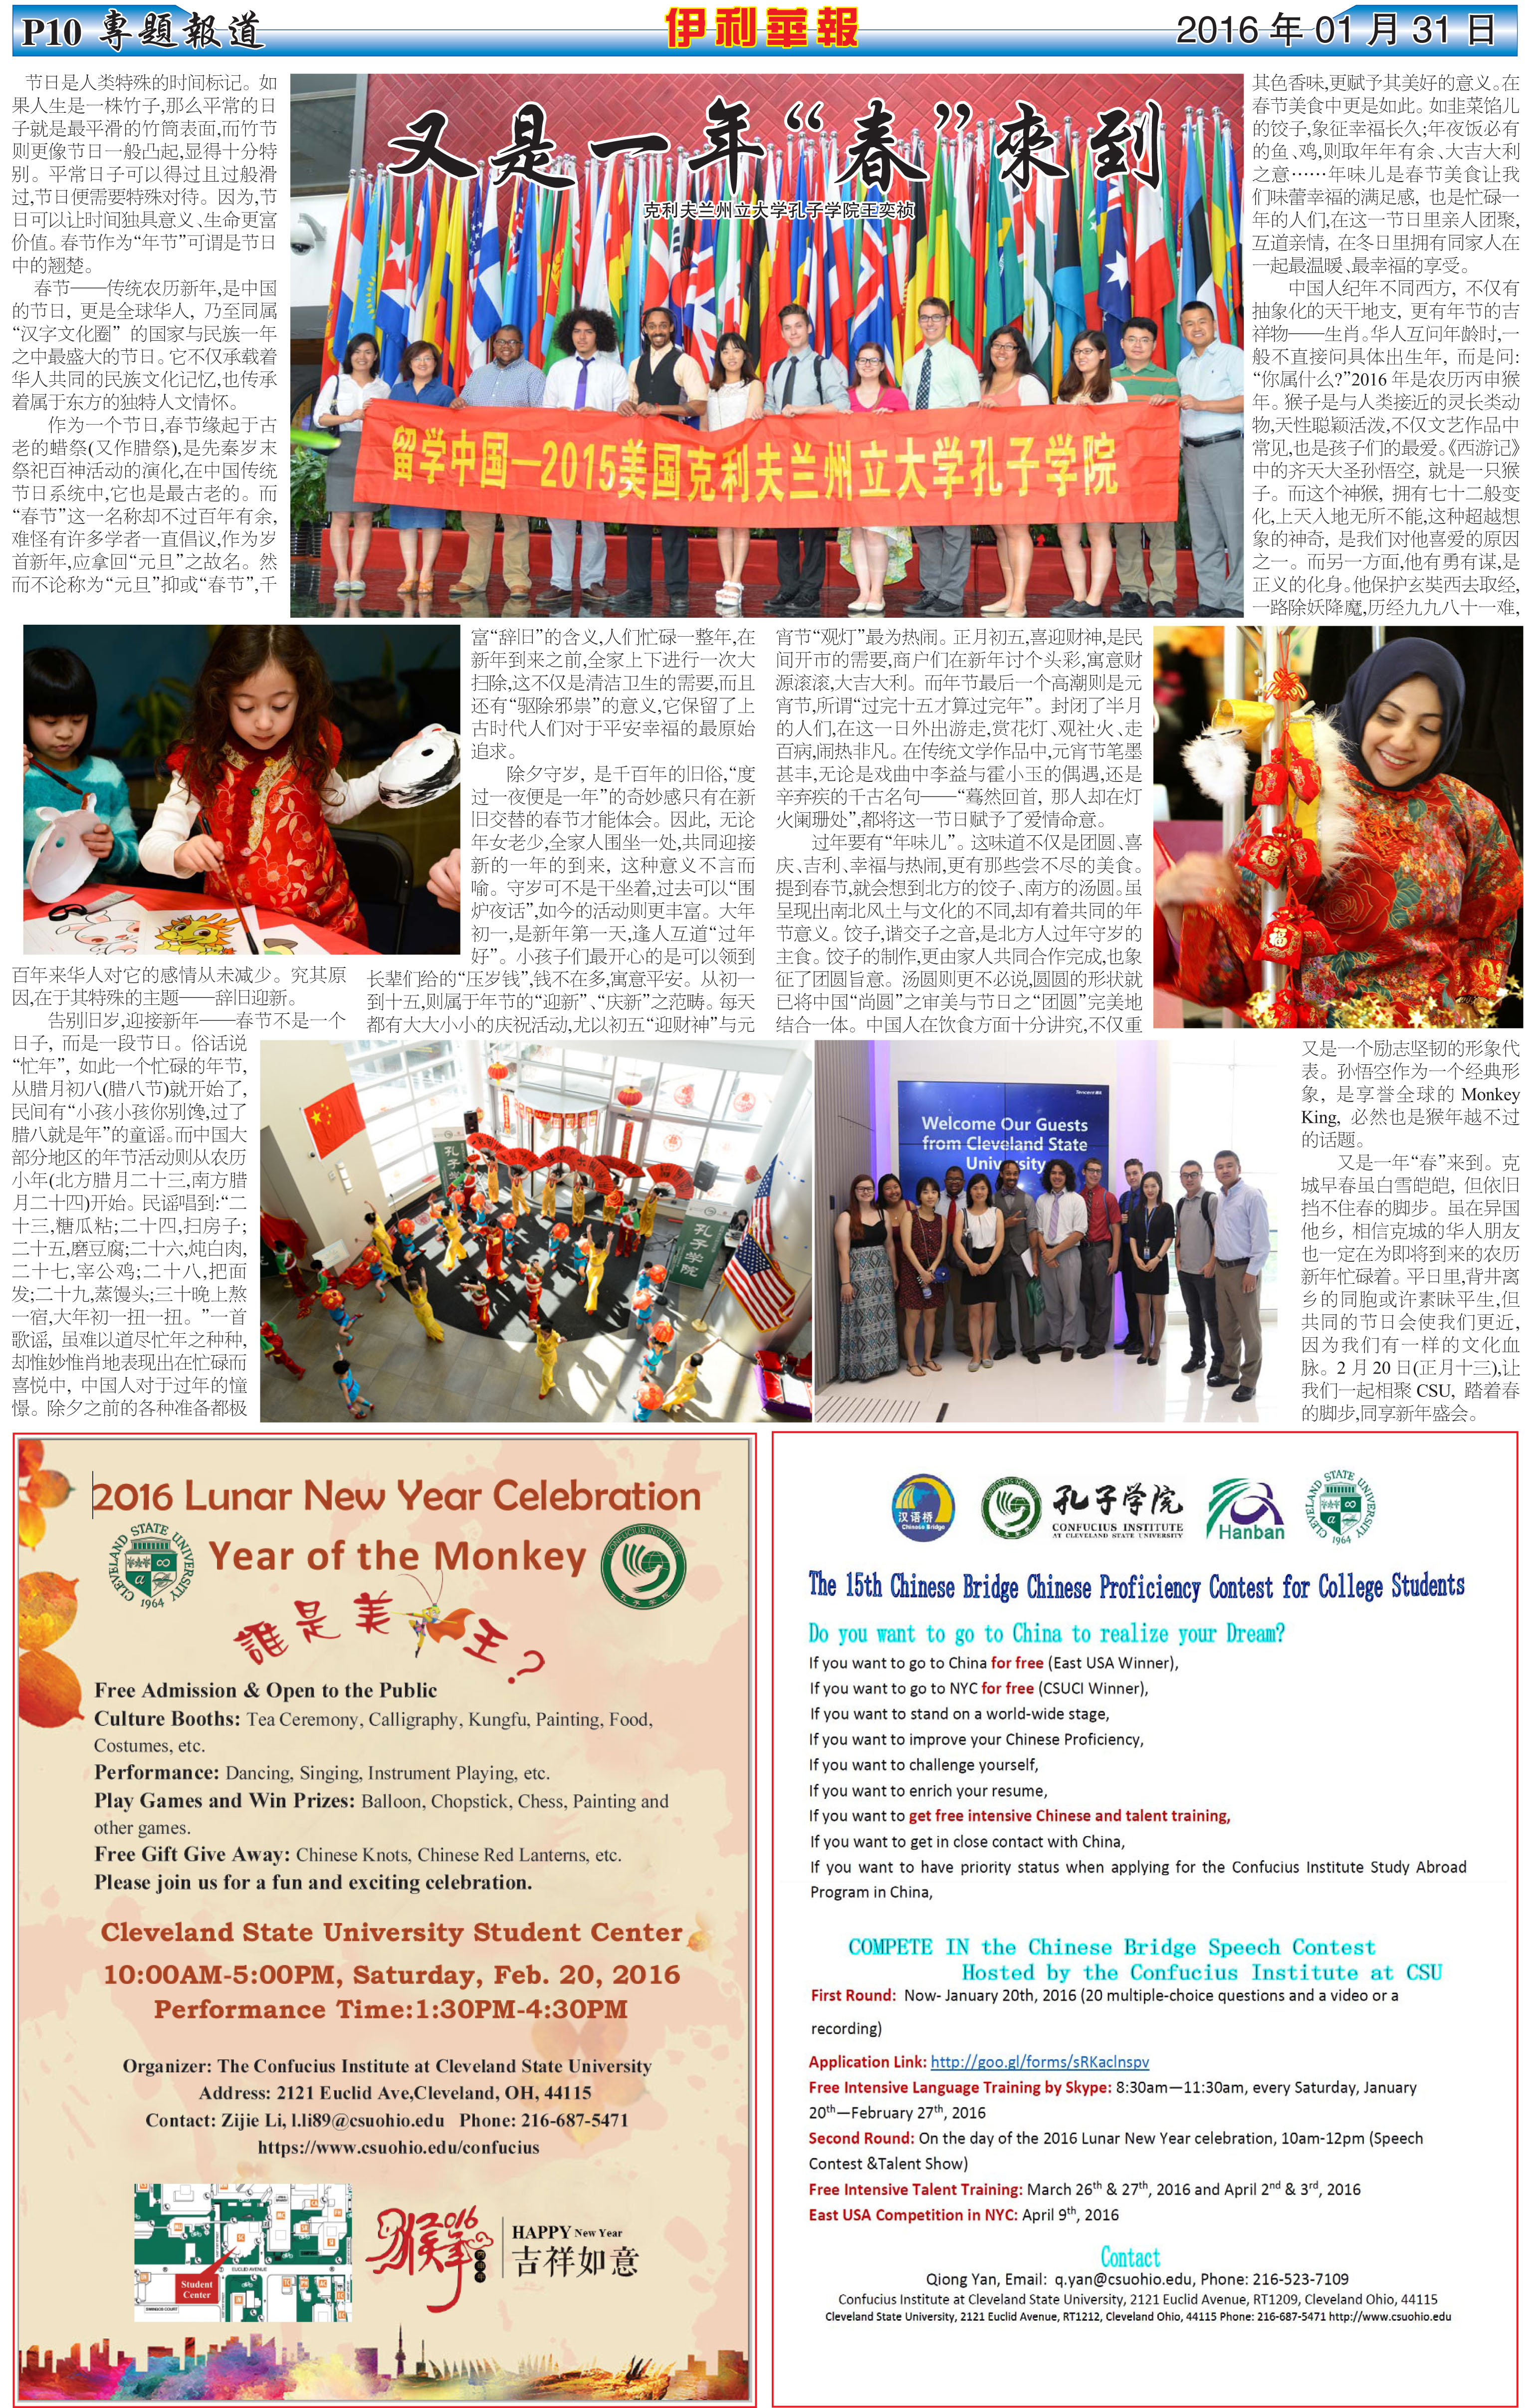 View Erie Chinese Journal's Page on the Confucius Institute